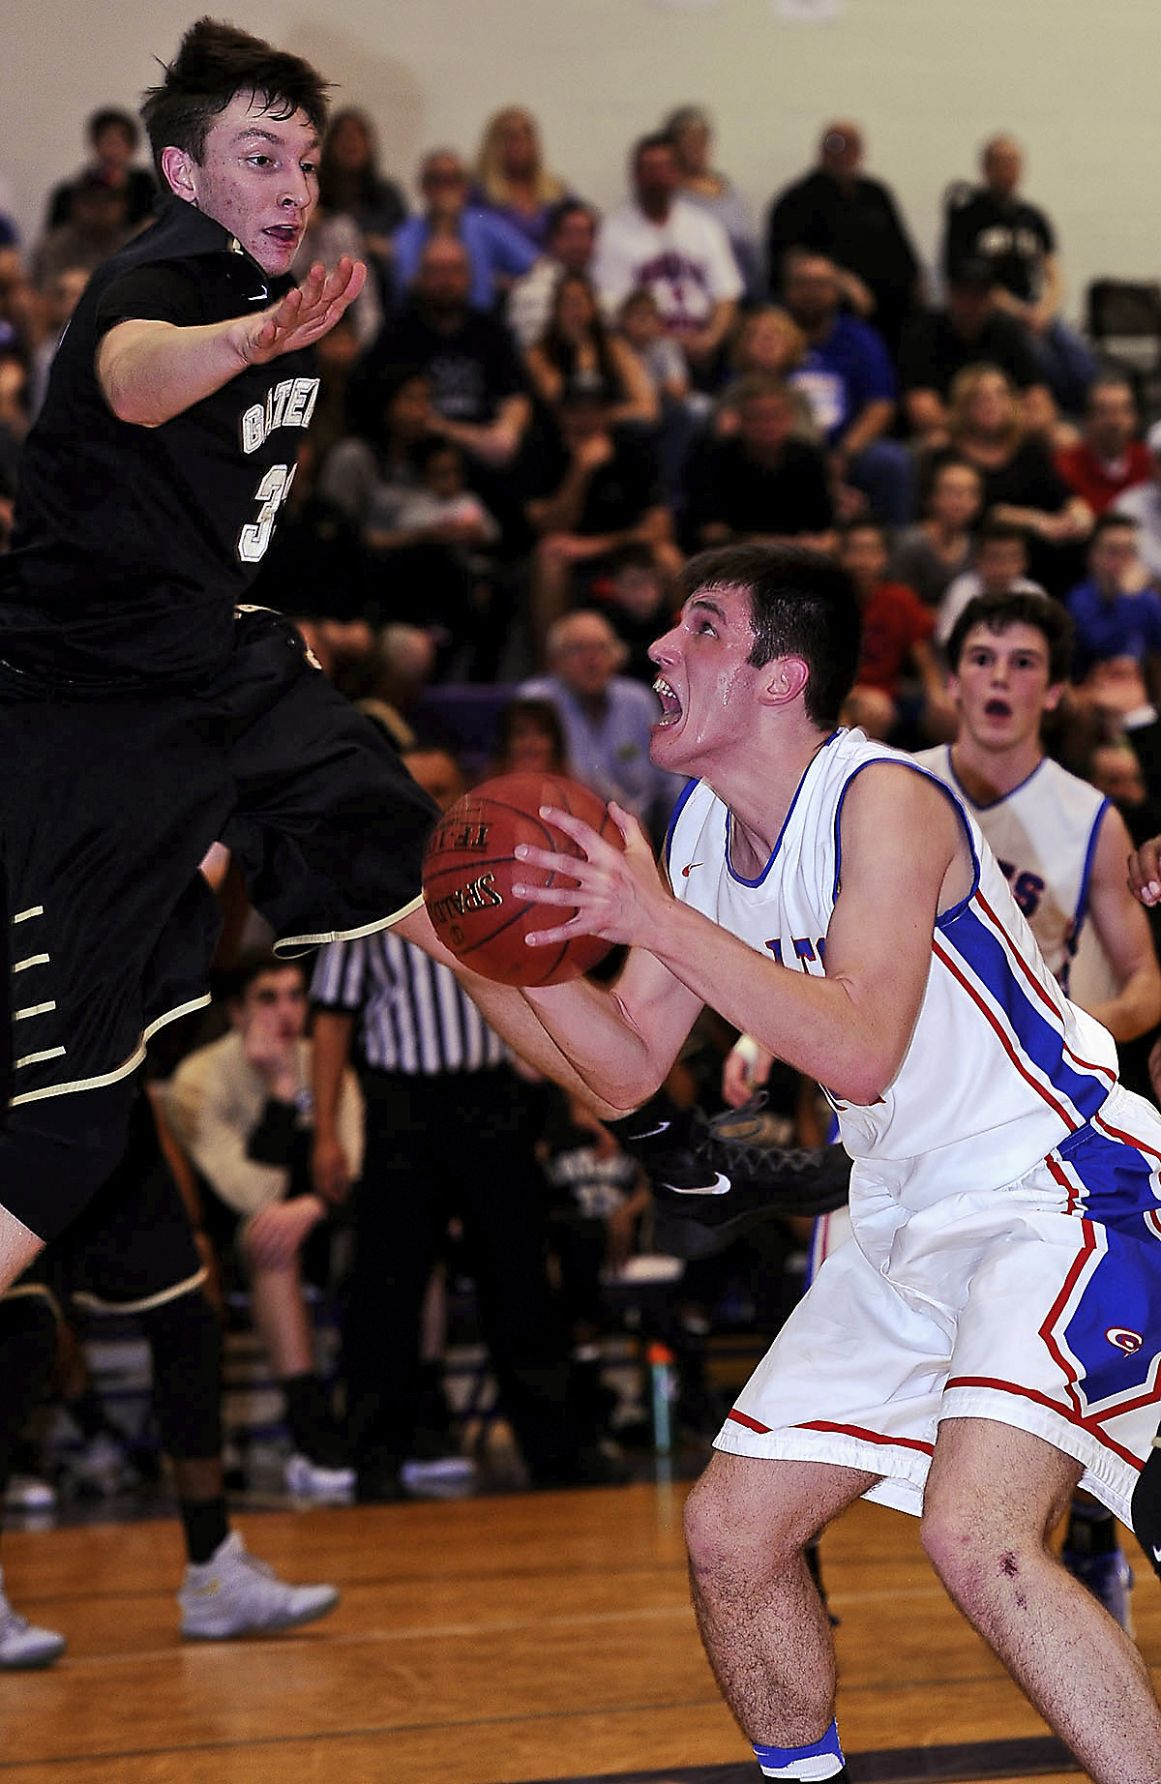 Ugly win puts Chartiers Valley in semifinals